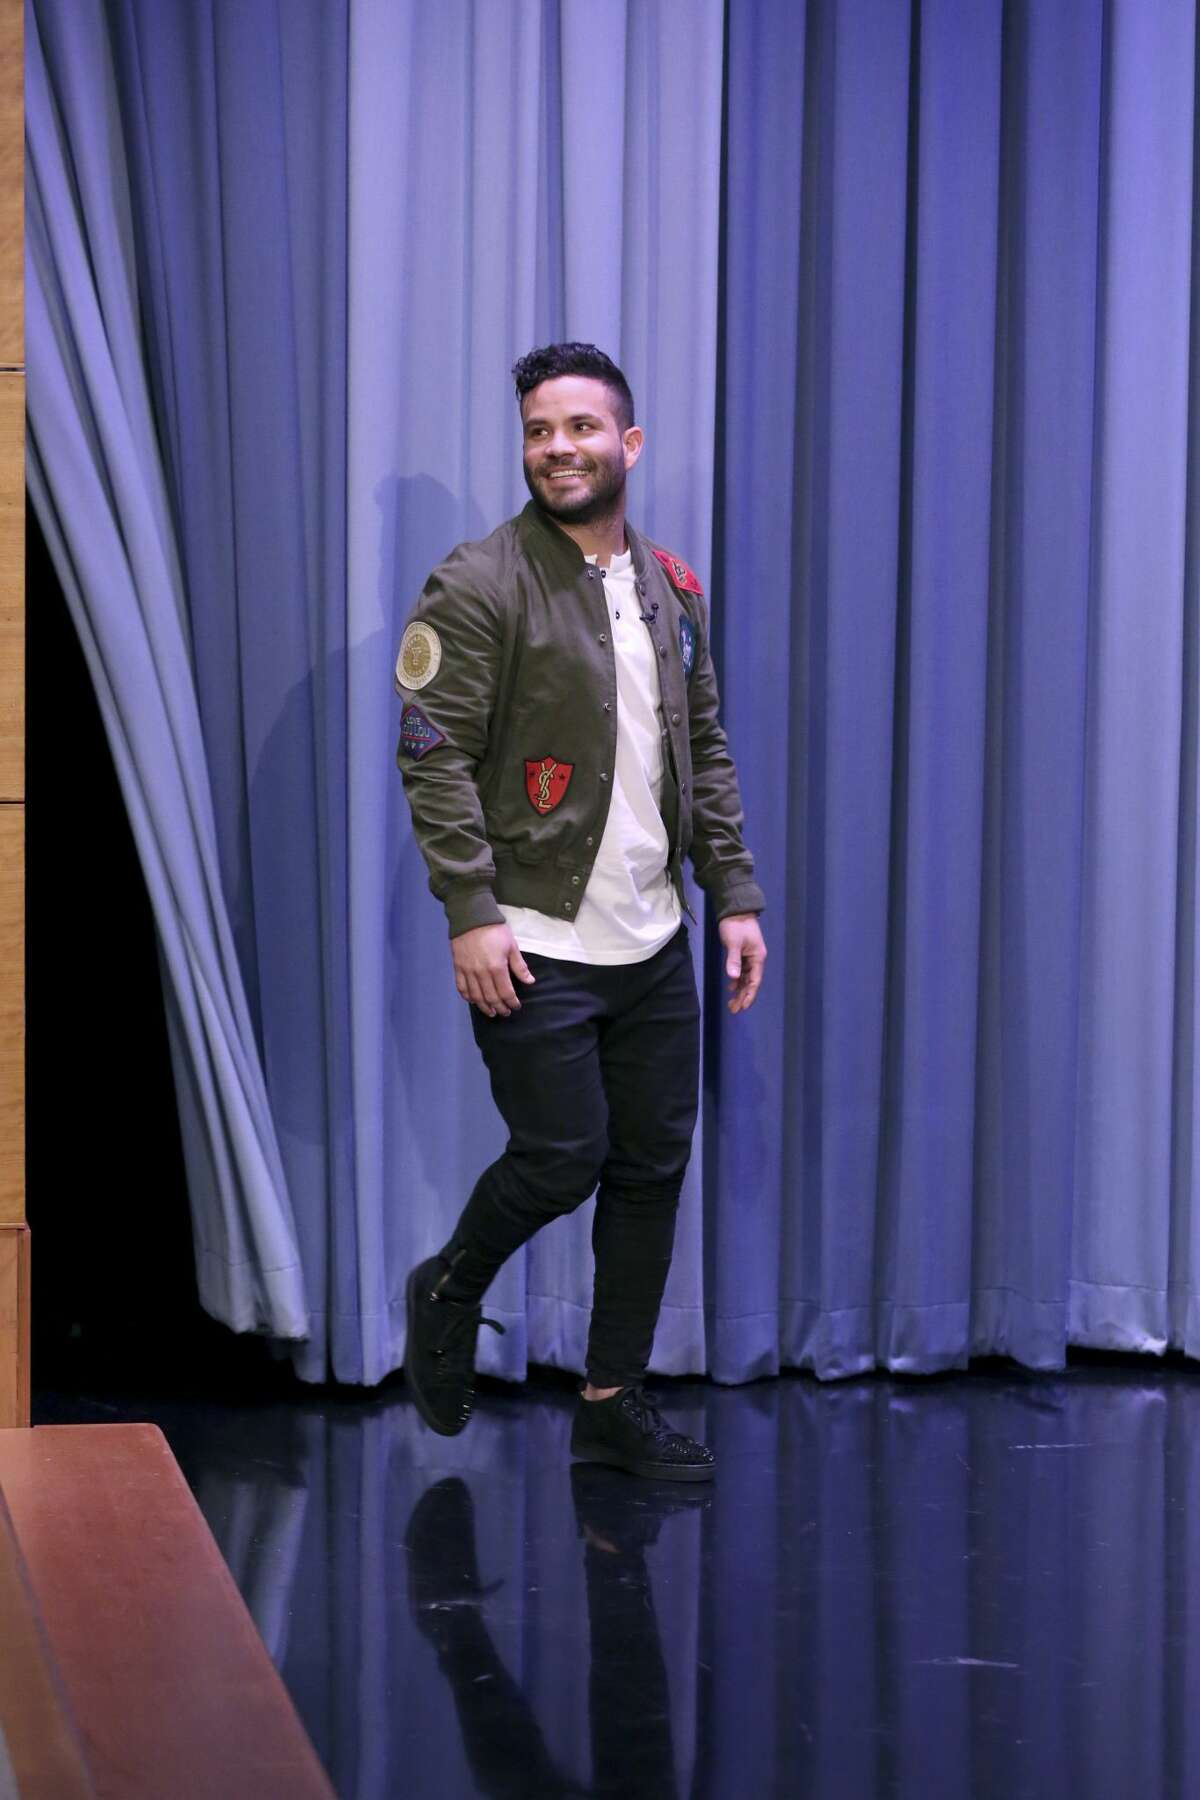 THE TONIGHT SHOW STARRING JIMMY FALLON -- Episode 0767 -- Pictured: Athlete José Altuve during an interview on November 2, 2017 -- (Photo by: Andrew Lipovsky/NBC/NBCU Photo Bank via Getty Images)